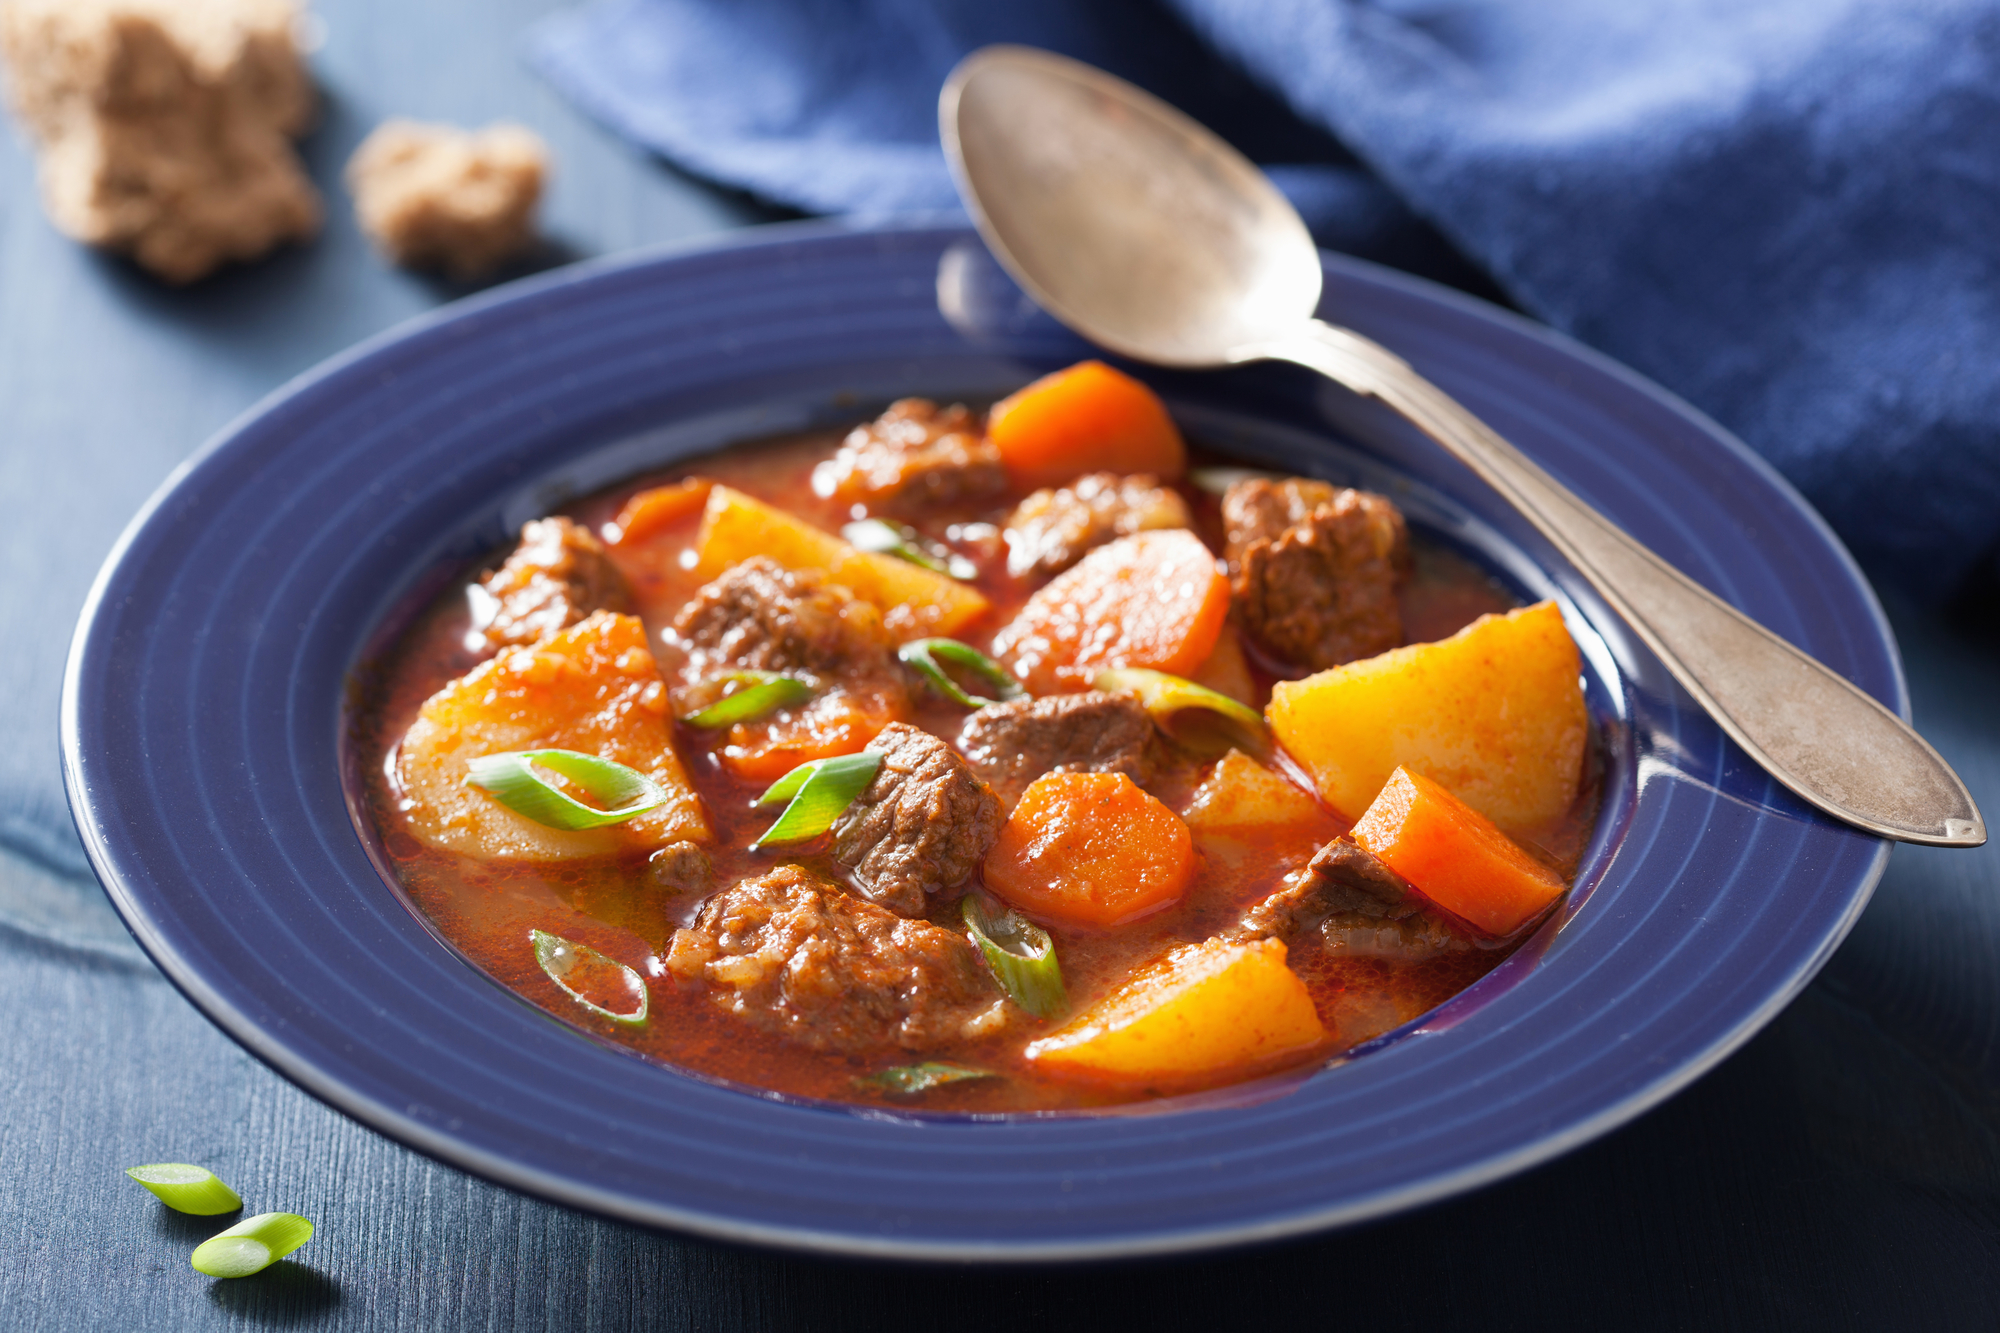 beef-stew-with-carrots-and-potatoes-on-a-plate